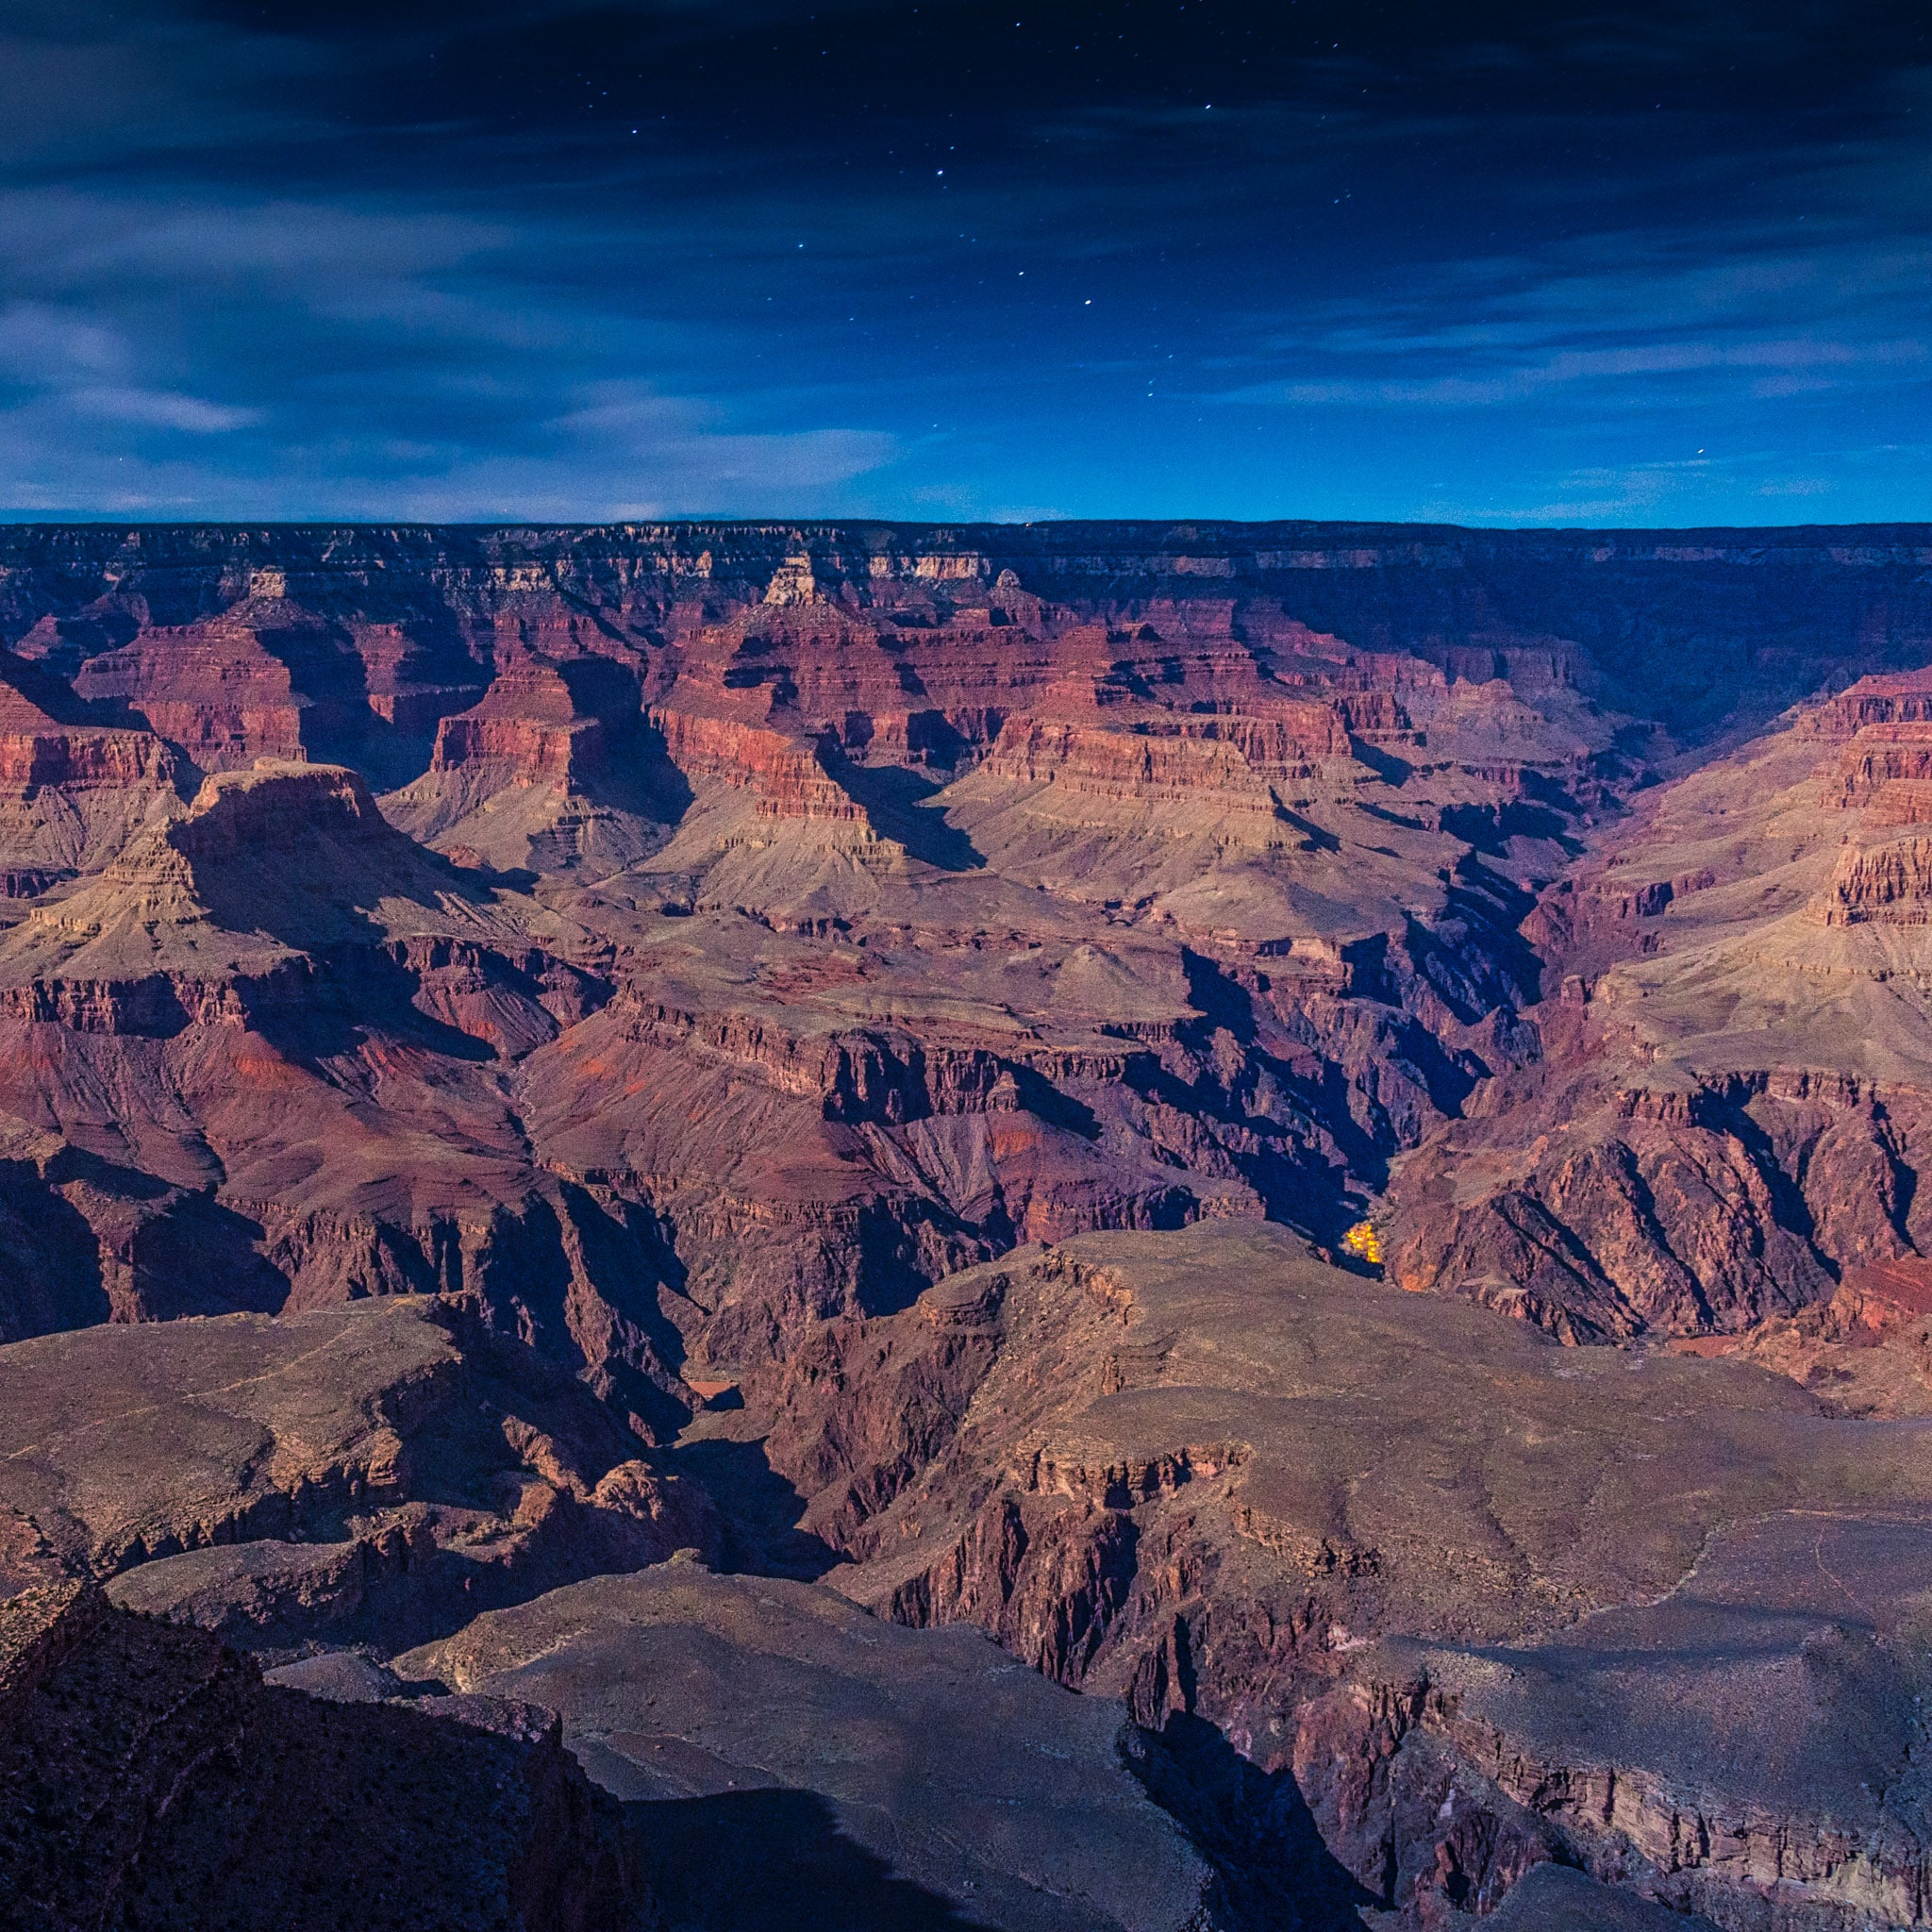 Phantom Ranch as seen from Yavapai Point on the South Rim of Grand Canyon National Park in Arizona.